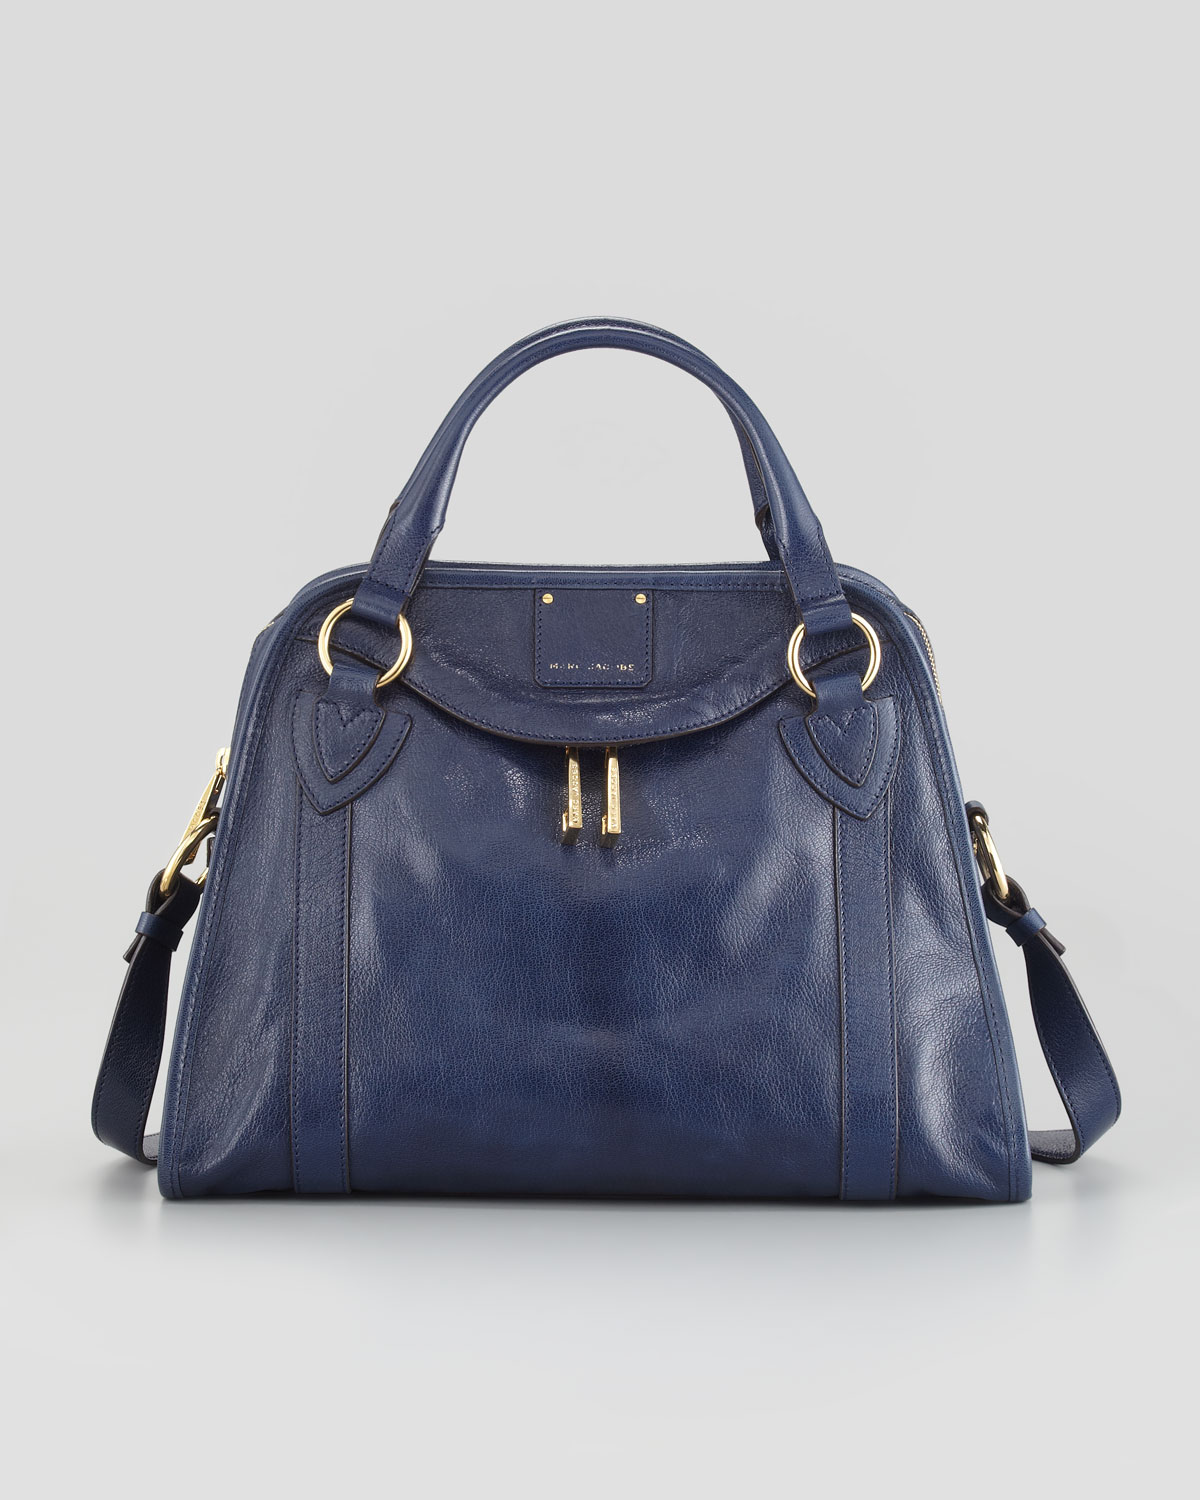 Marc jacobs Classic Wellington Satchel Bag Navy in Blue | Lyst